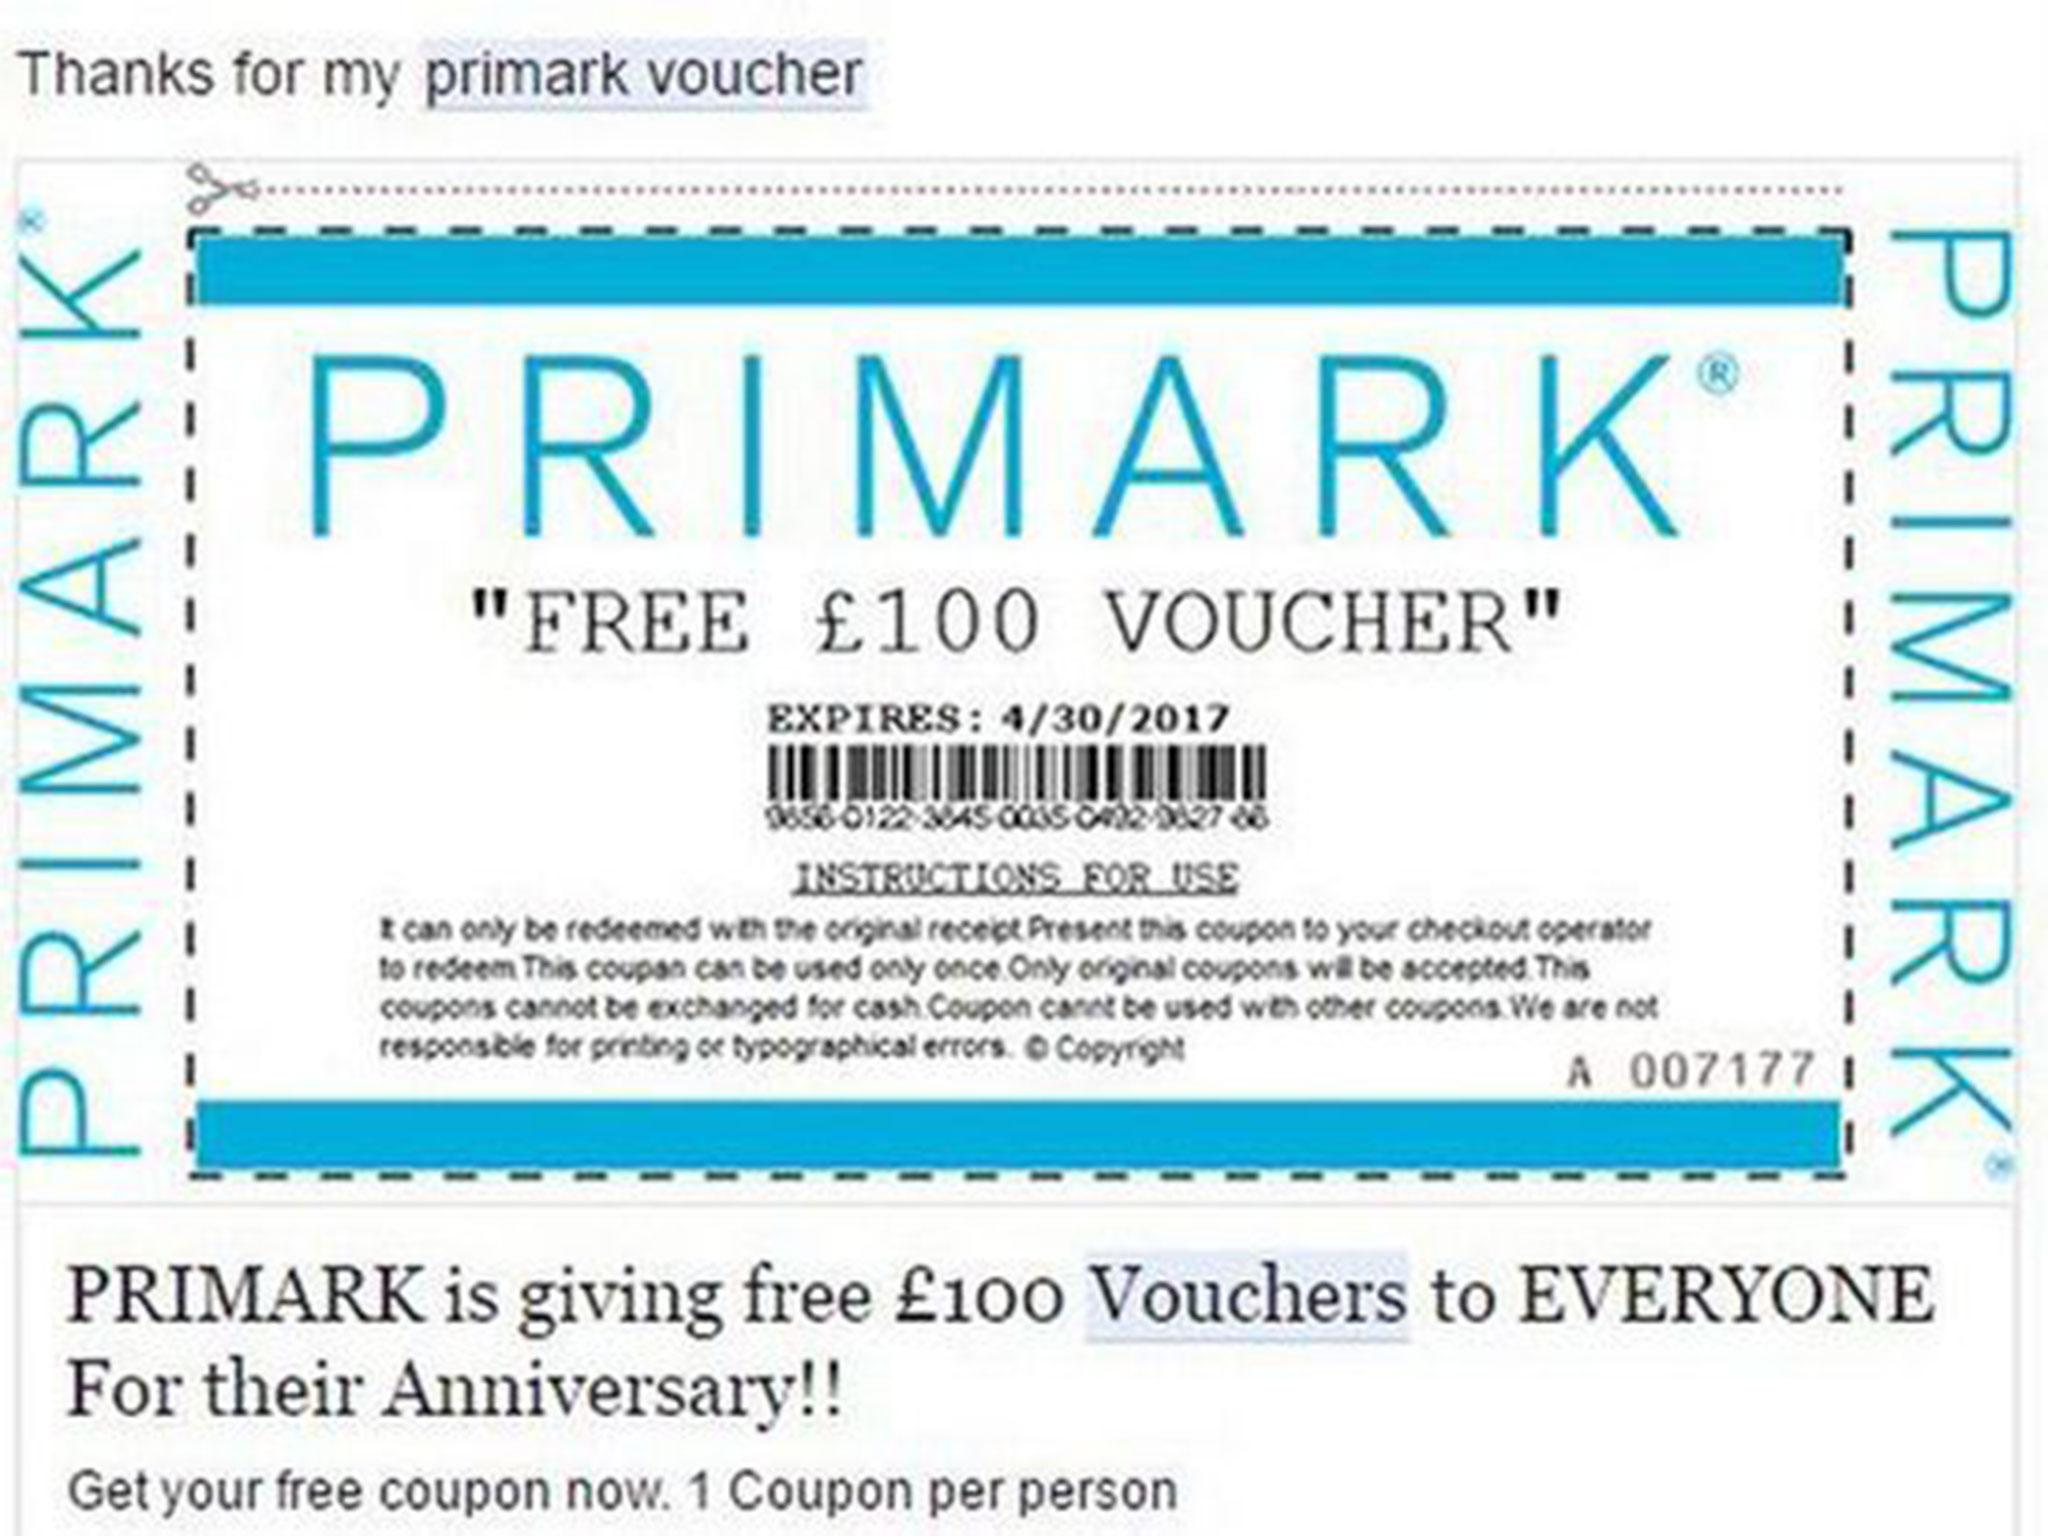 Primark shoppers warned about fake £100 vouchers scam circulating on